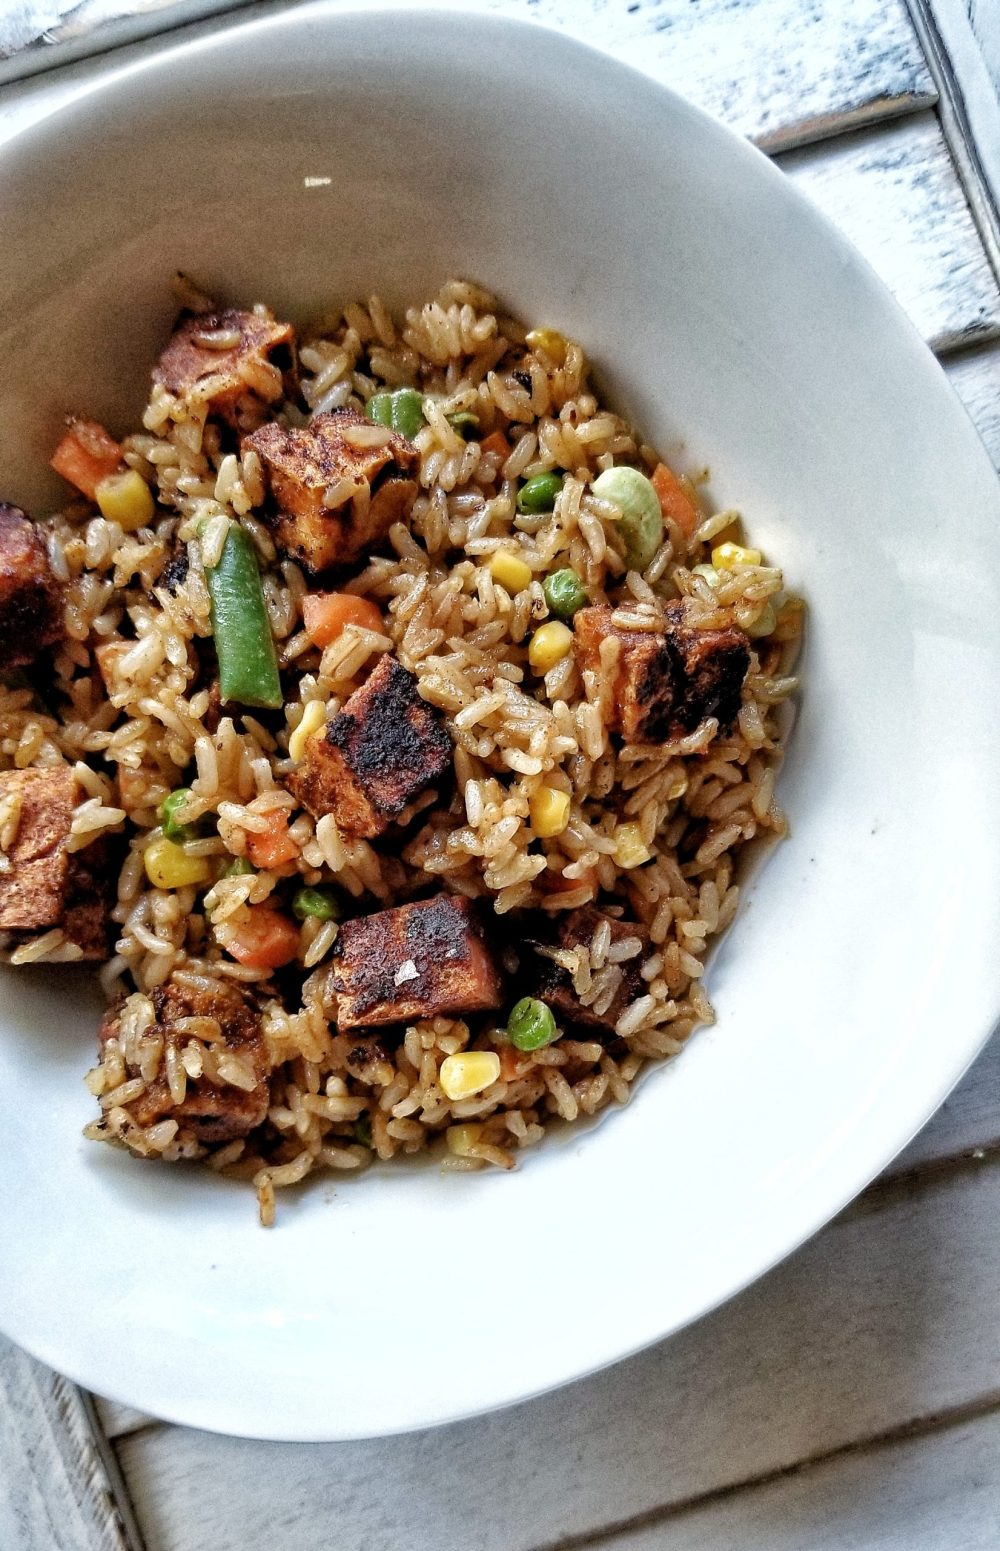 Bowl of stir-fried rice with tofu and mixed vegetables